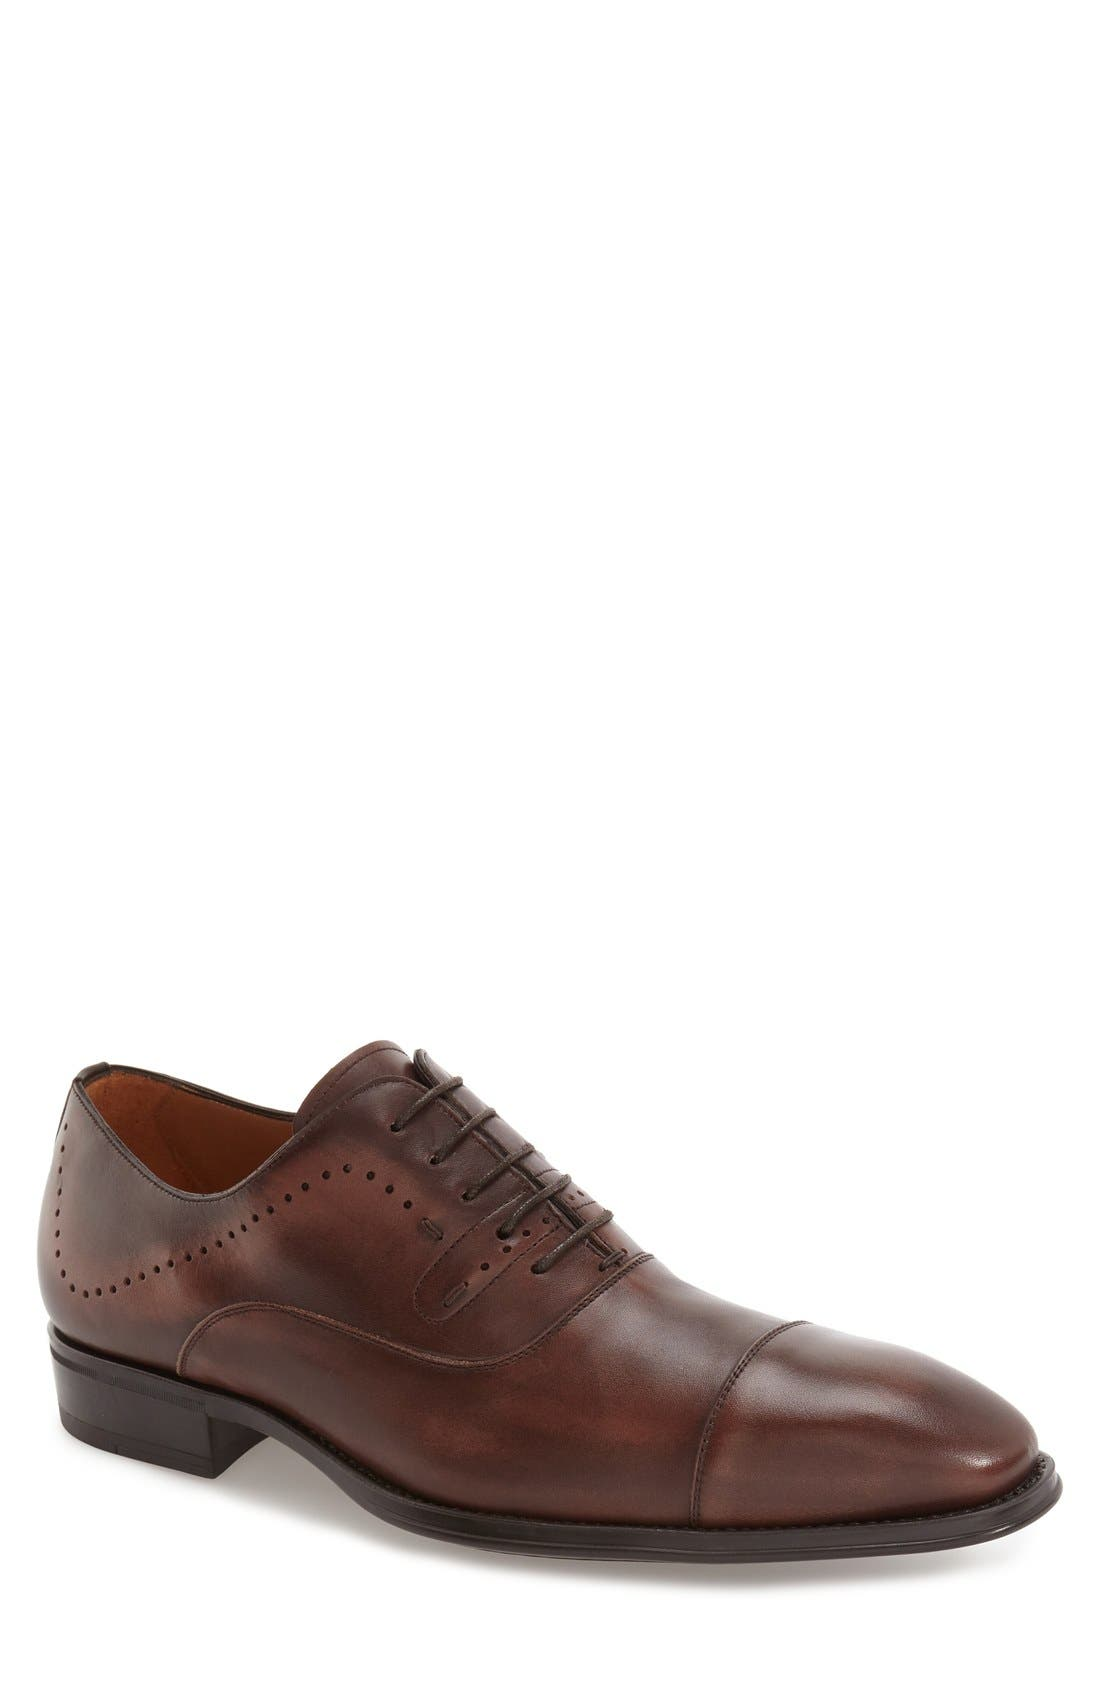 Mezlan 'Fermo' Cap Toe Perforated Oxford (Men)